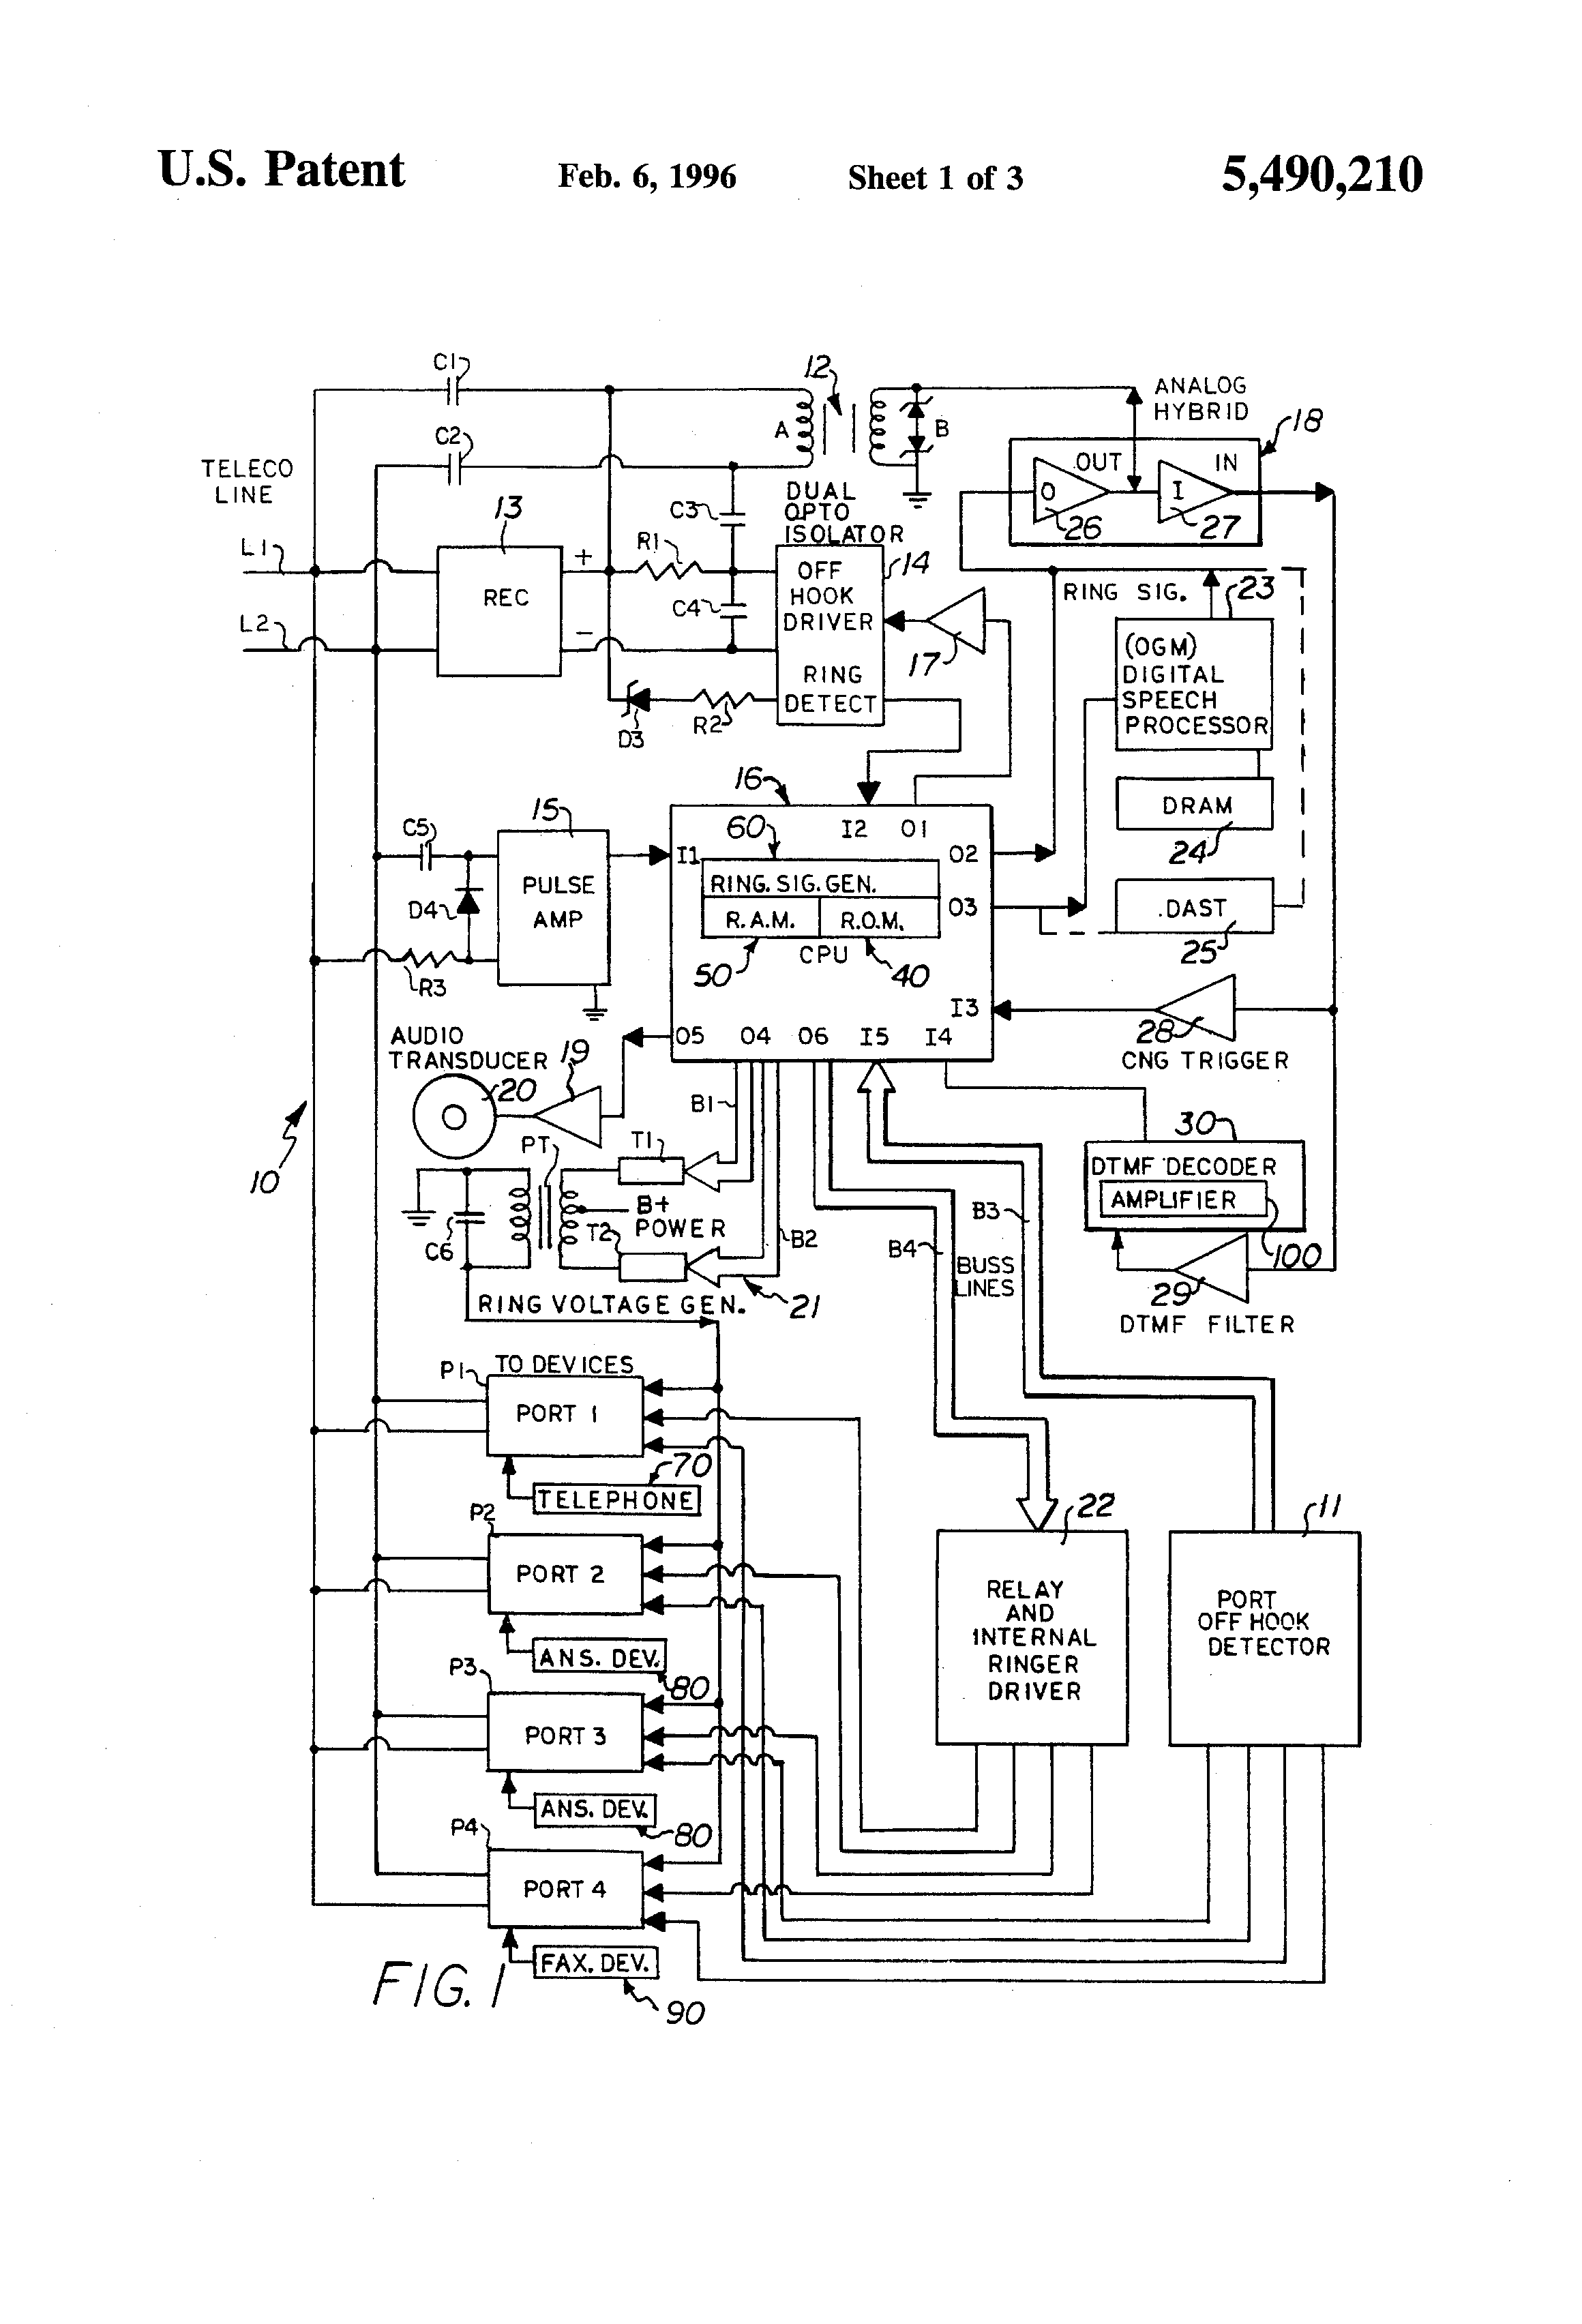 Rings Once Then Beeps 3 Times Then Hangs Up - Patent drawing